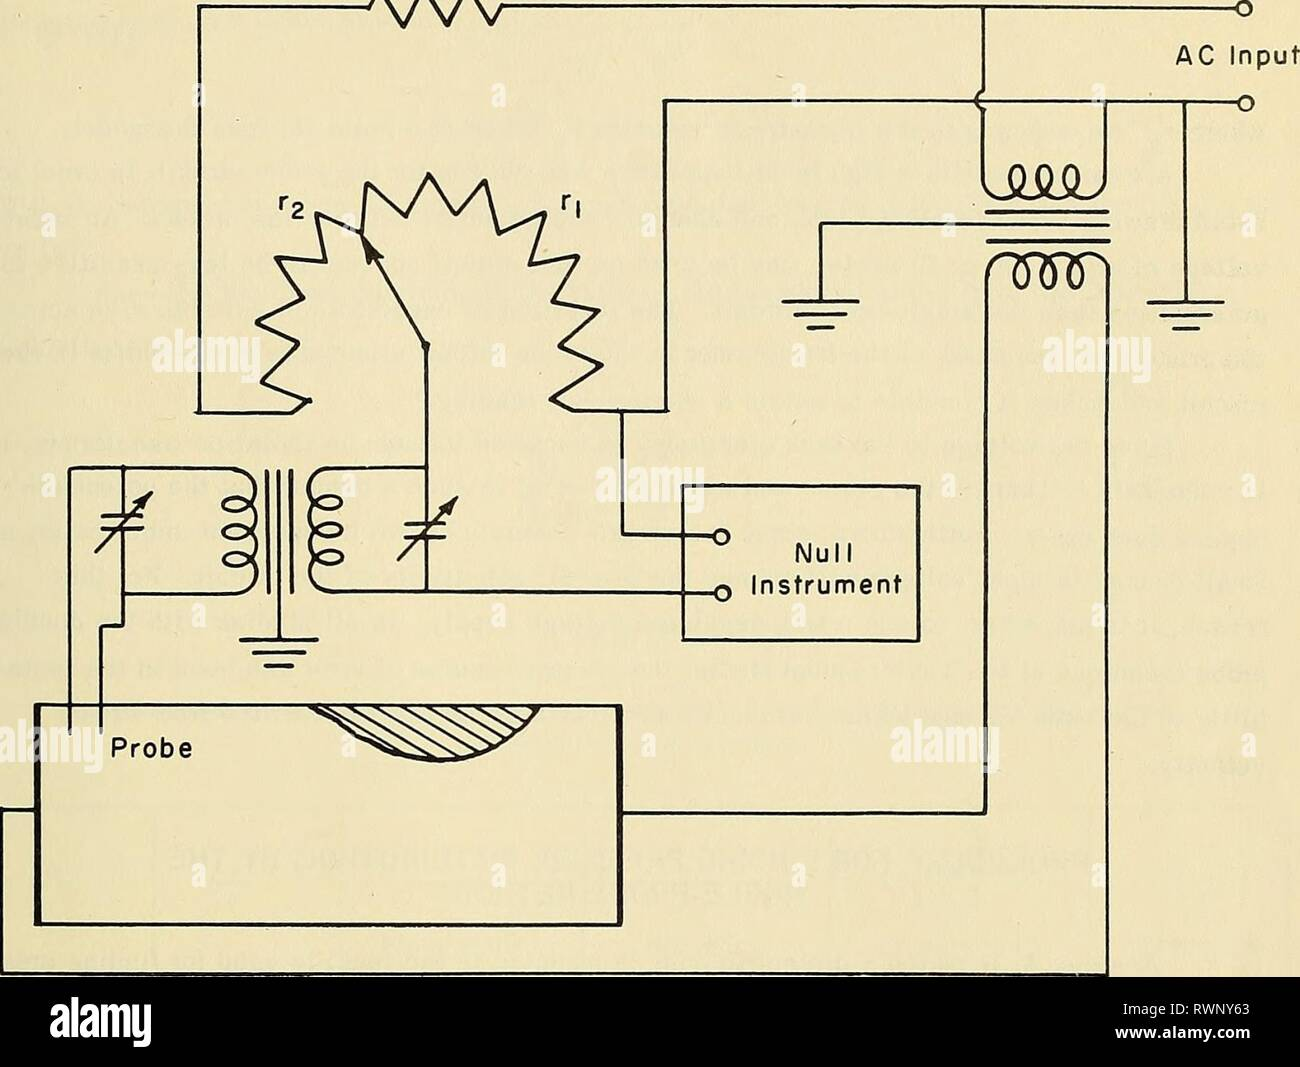 Wiring Diagram High Resolution Stock Photography And Images Alamy